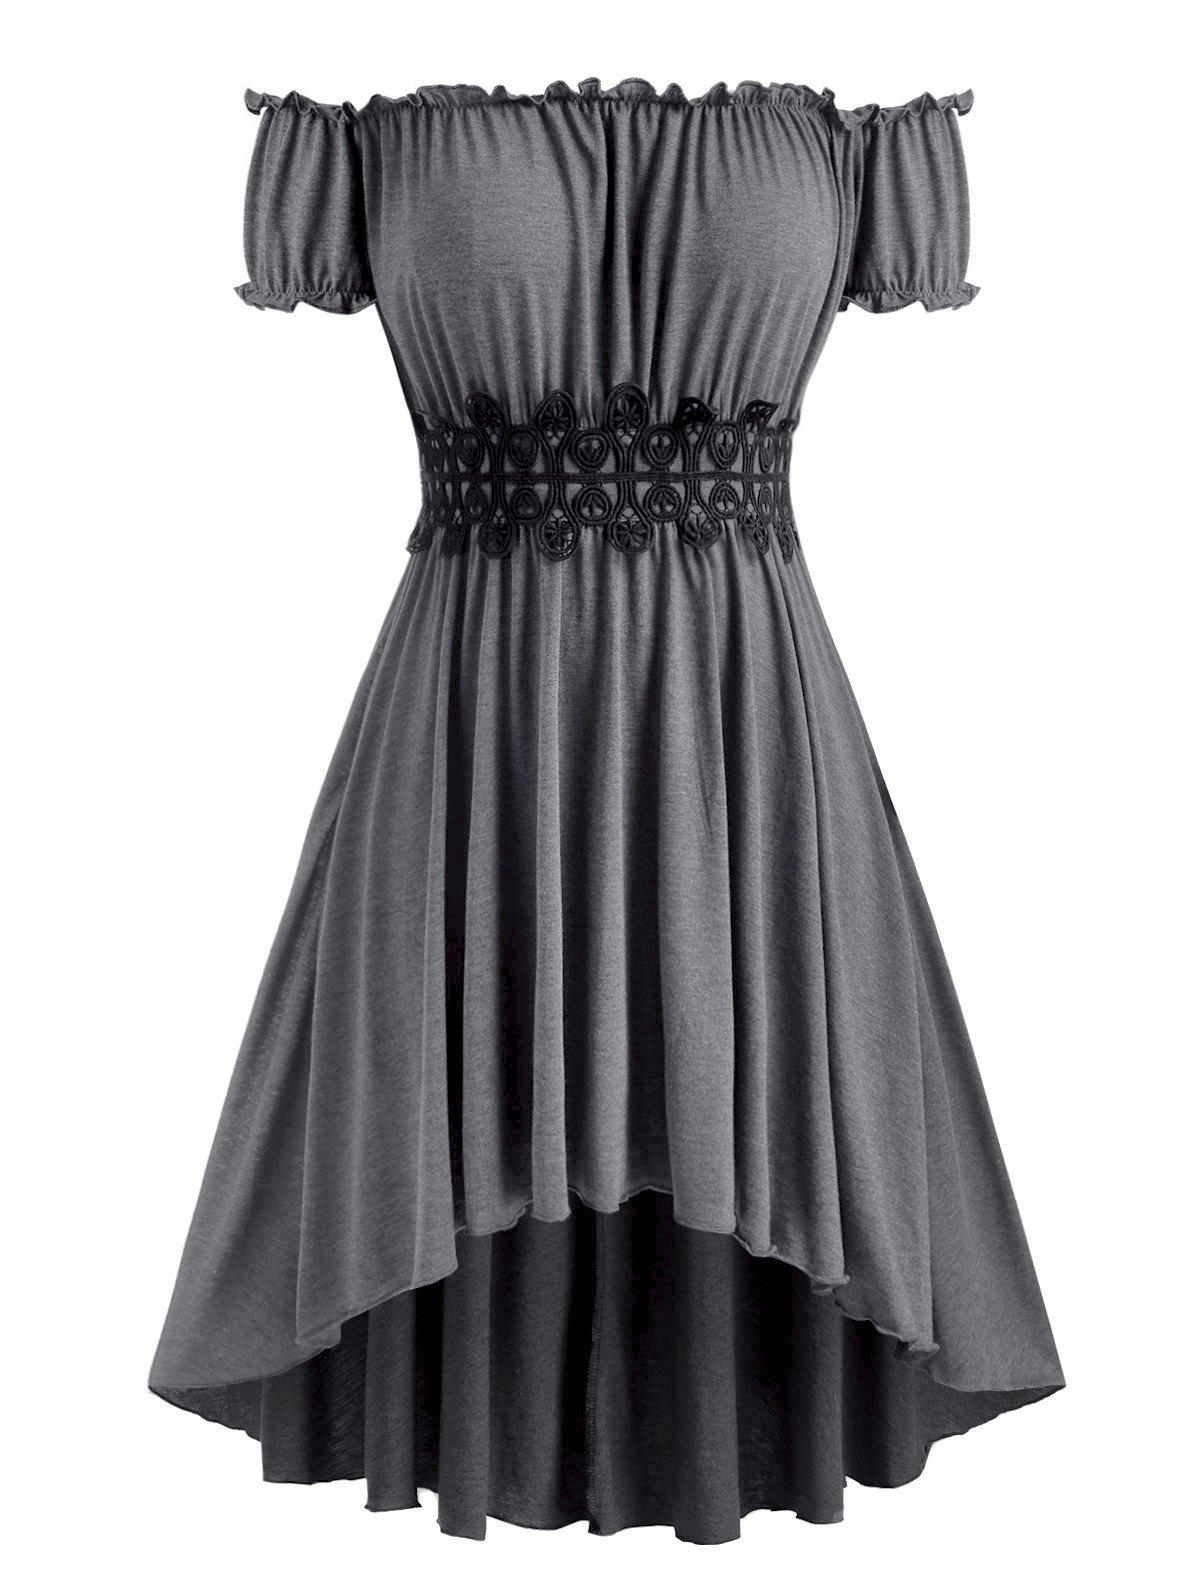 Plus Size Off The Shoulder High Low Midi Dress - GRAY 5X